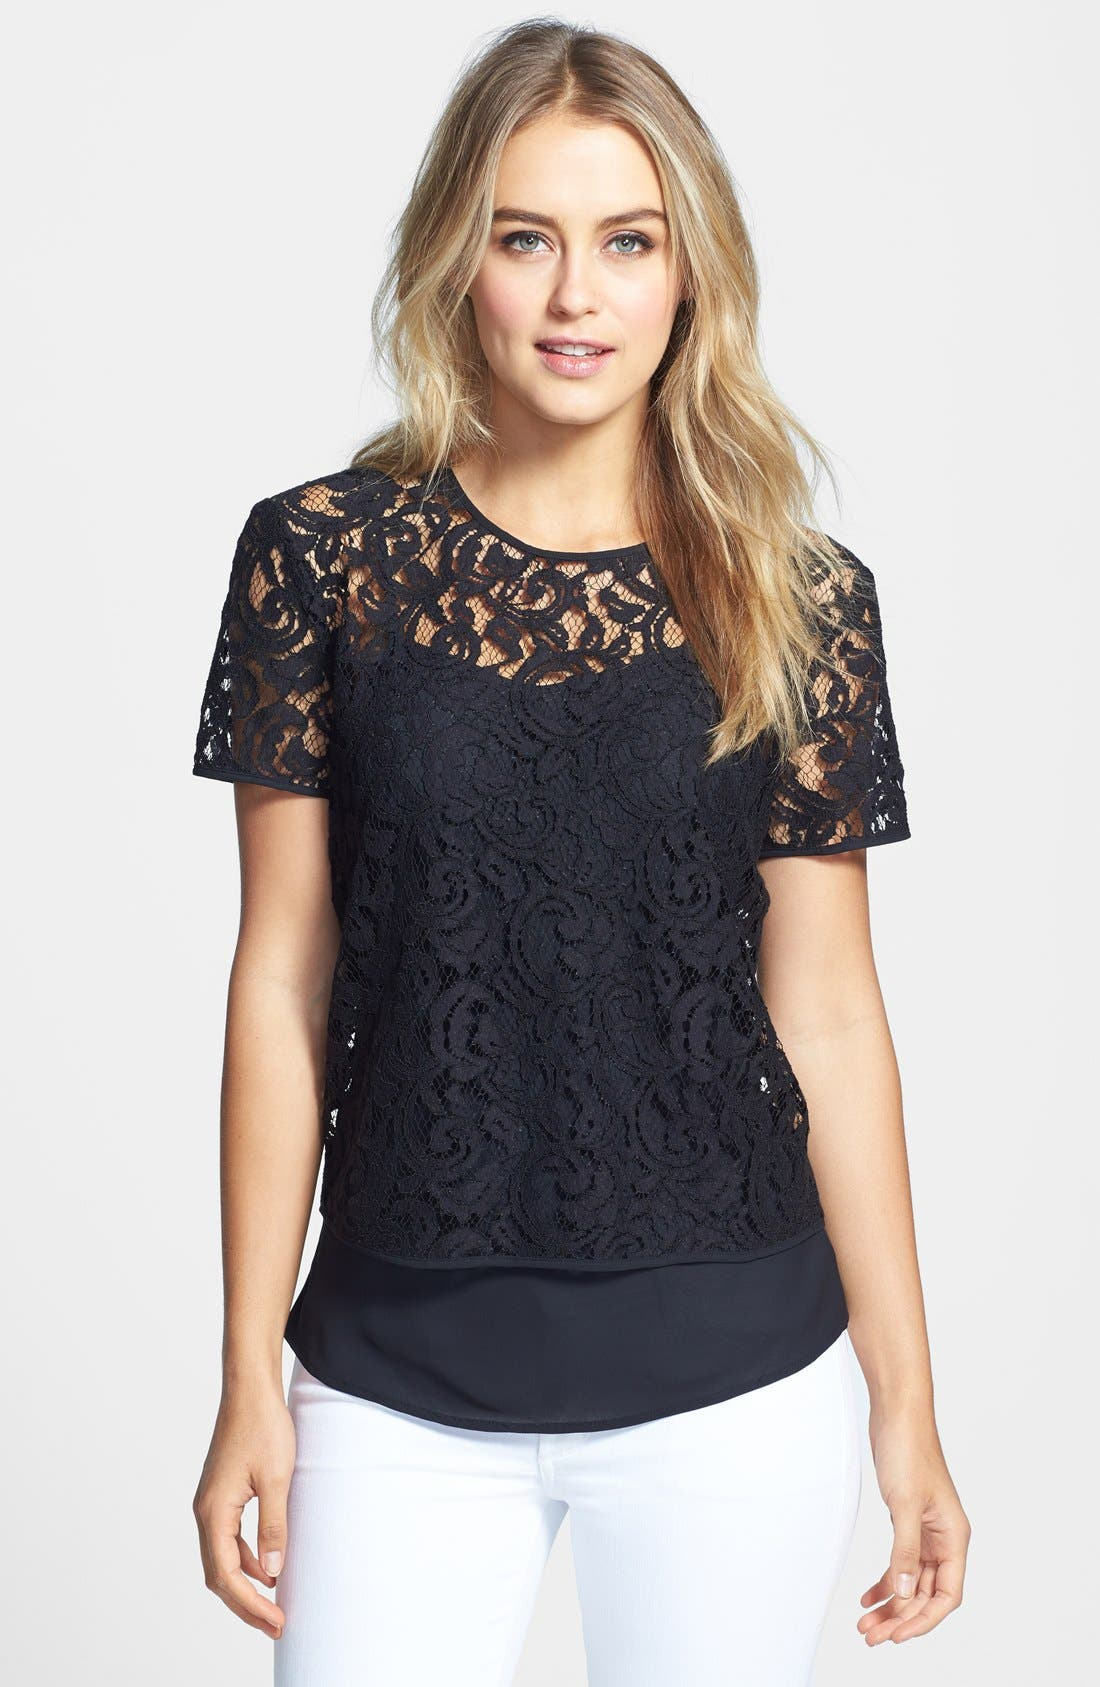 Lace Blouse with Camisole,                             Main thumbnail 1, color,                             Rich Black